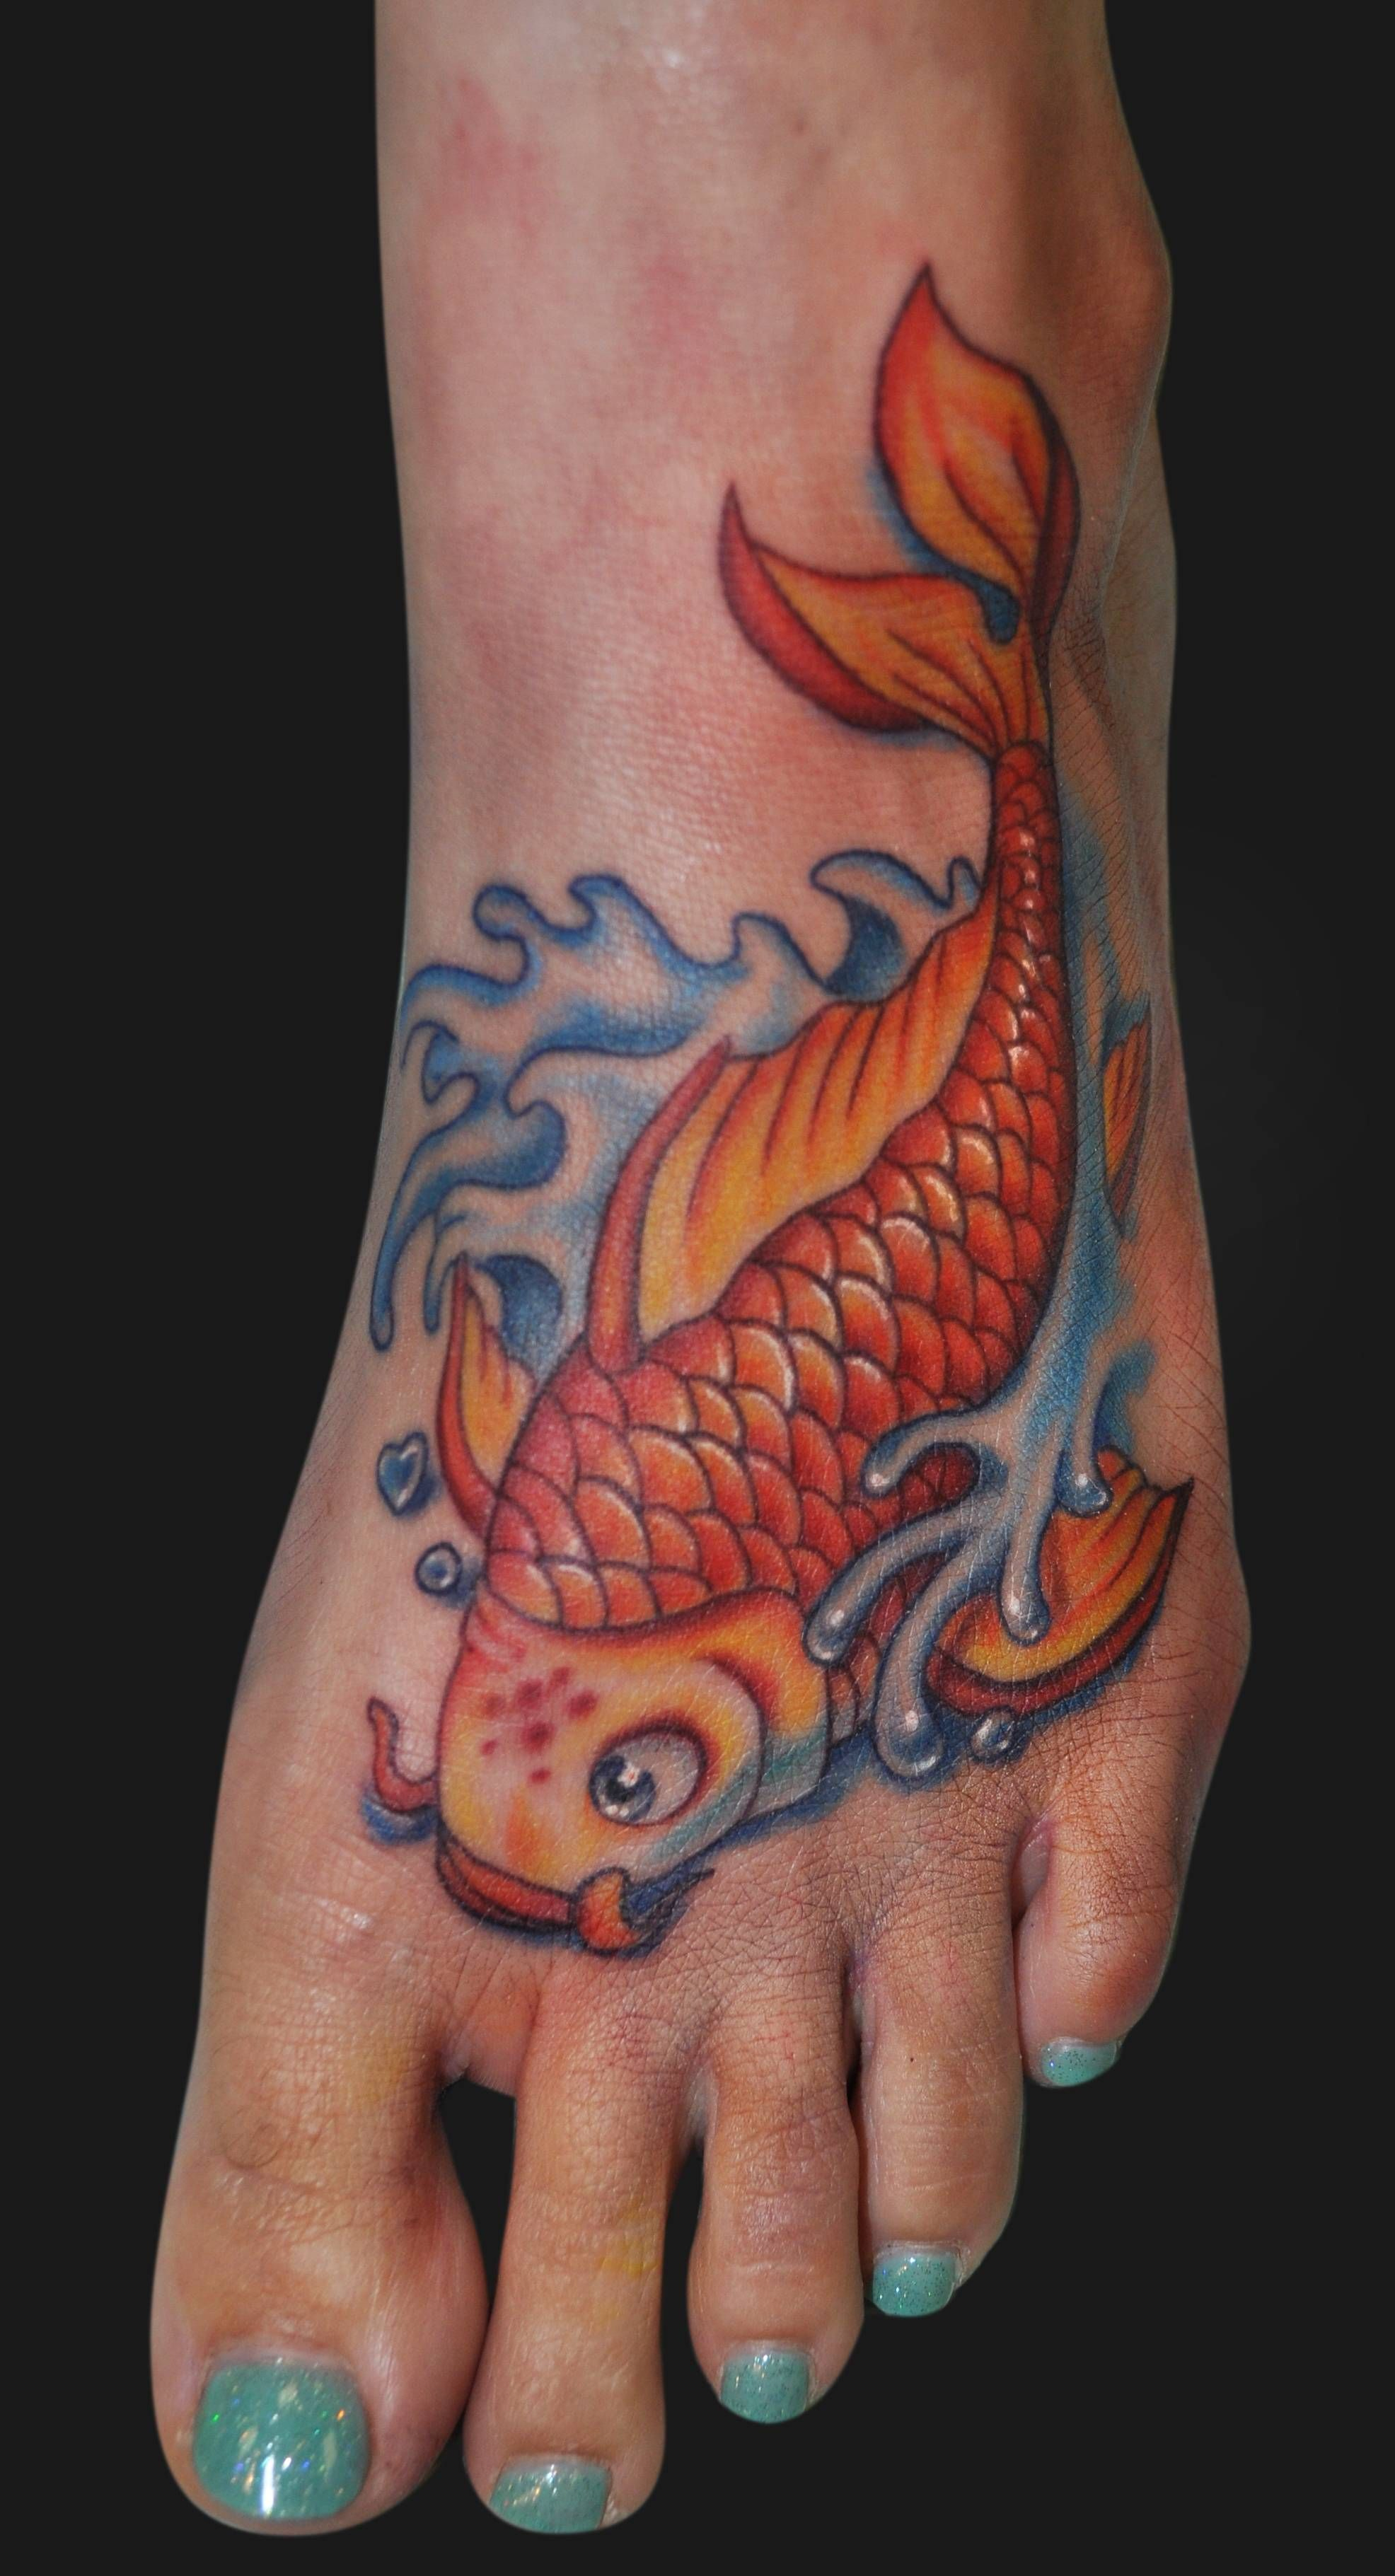 Colorful Koi Fish - Foot Tattoo, Tattoos of the foot or hand are not ...